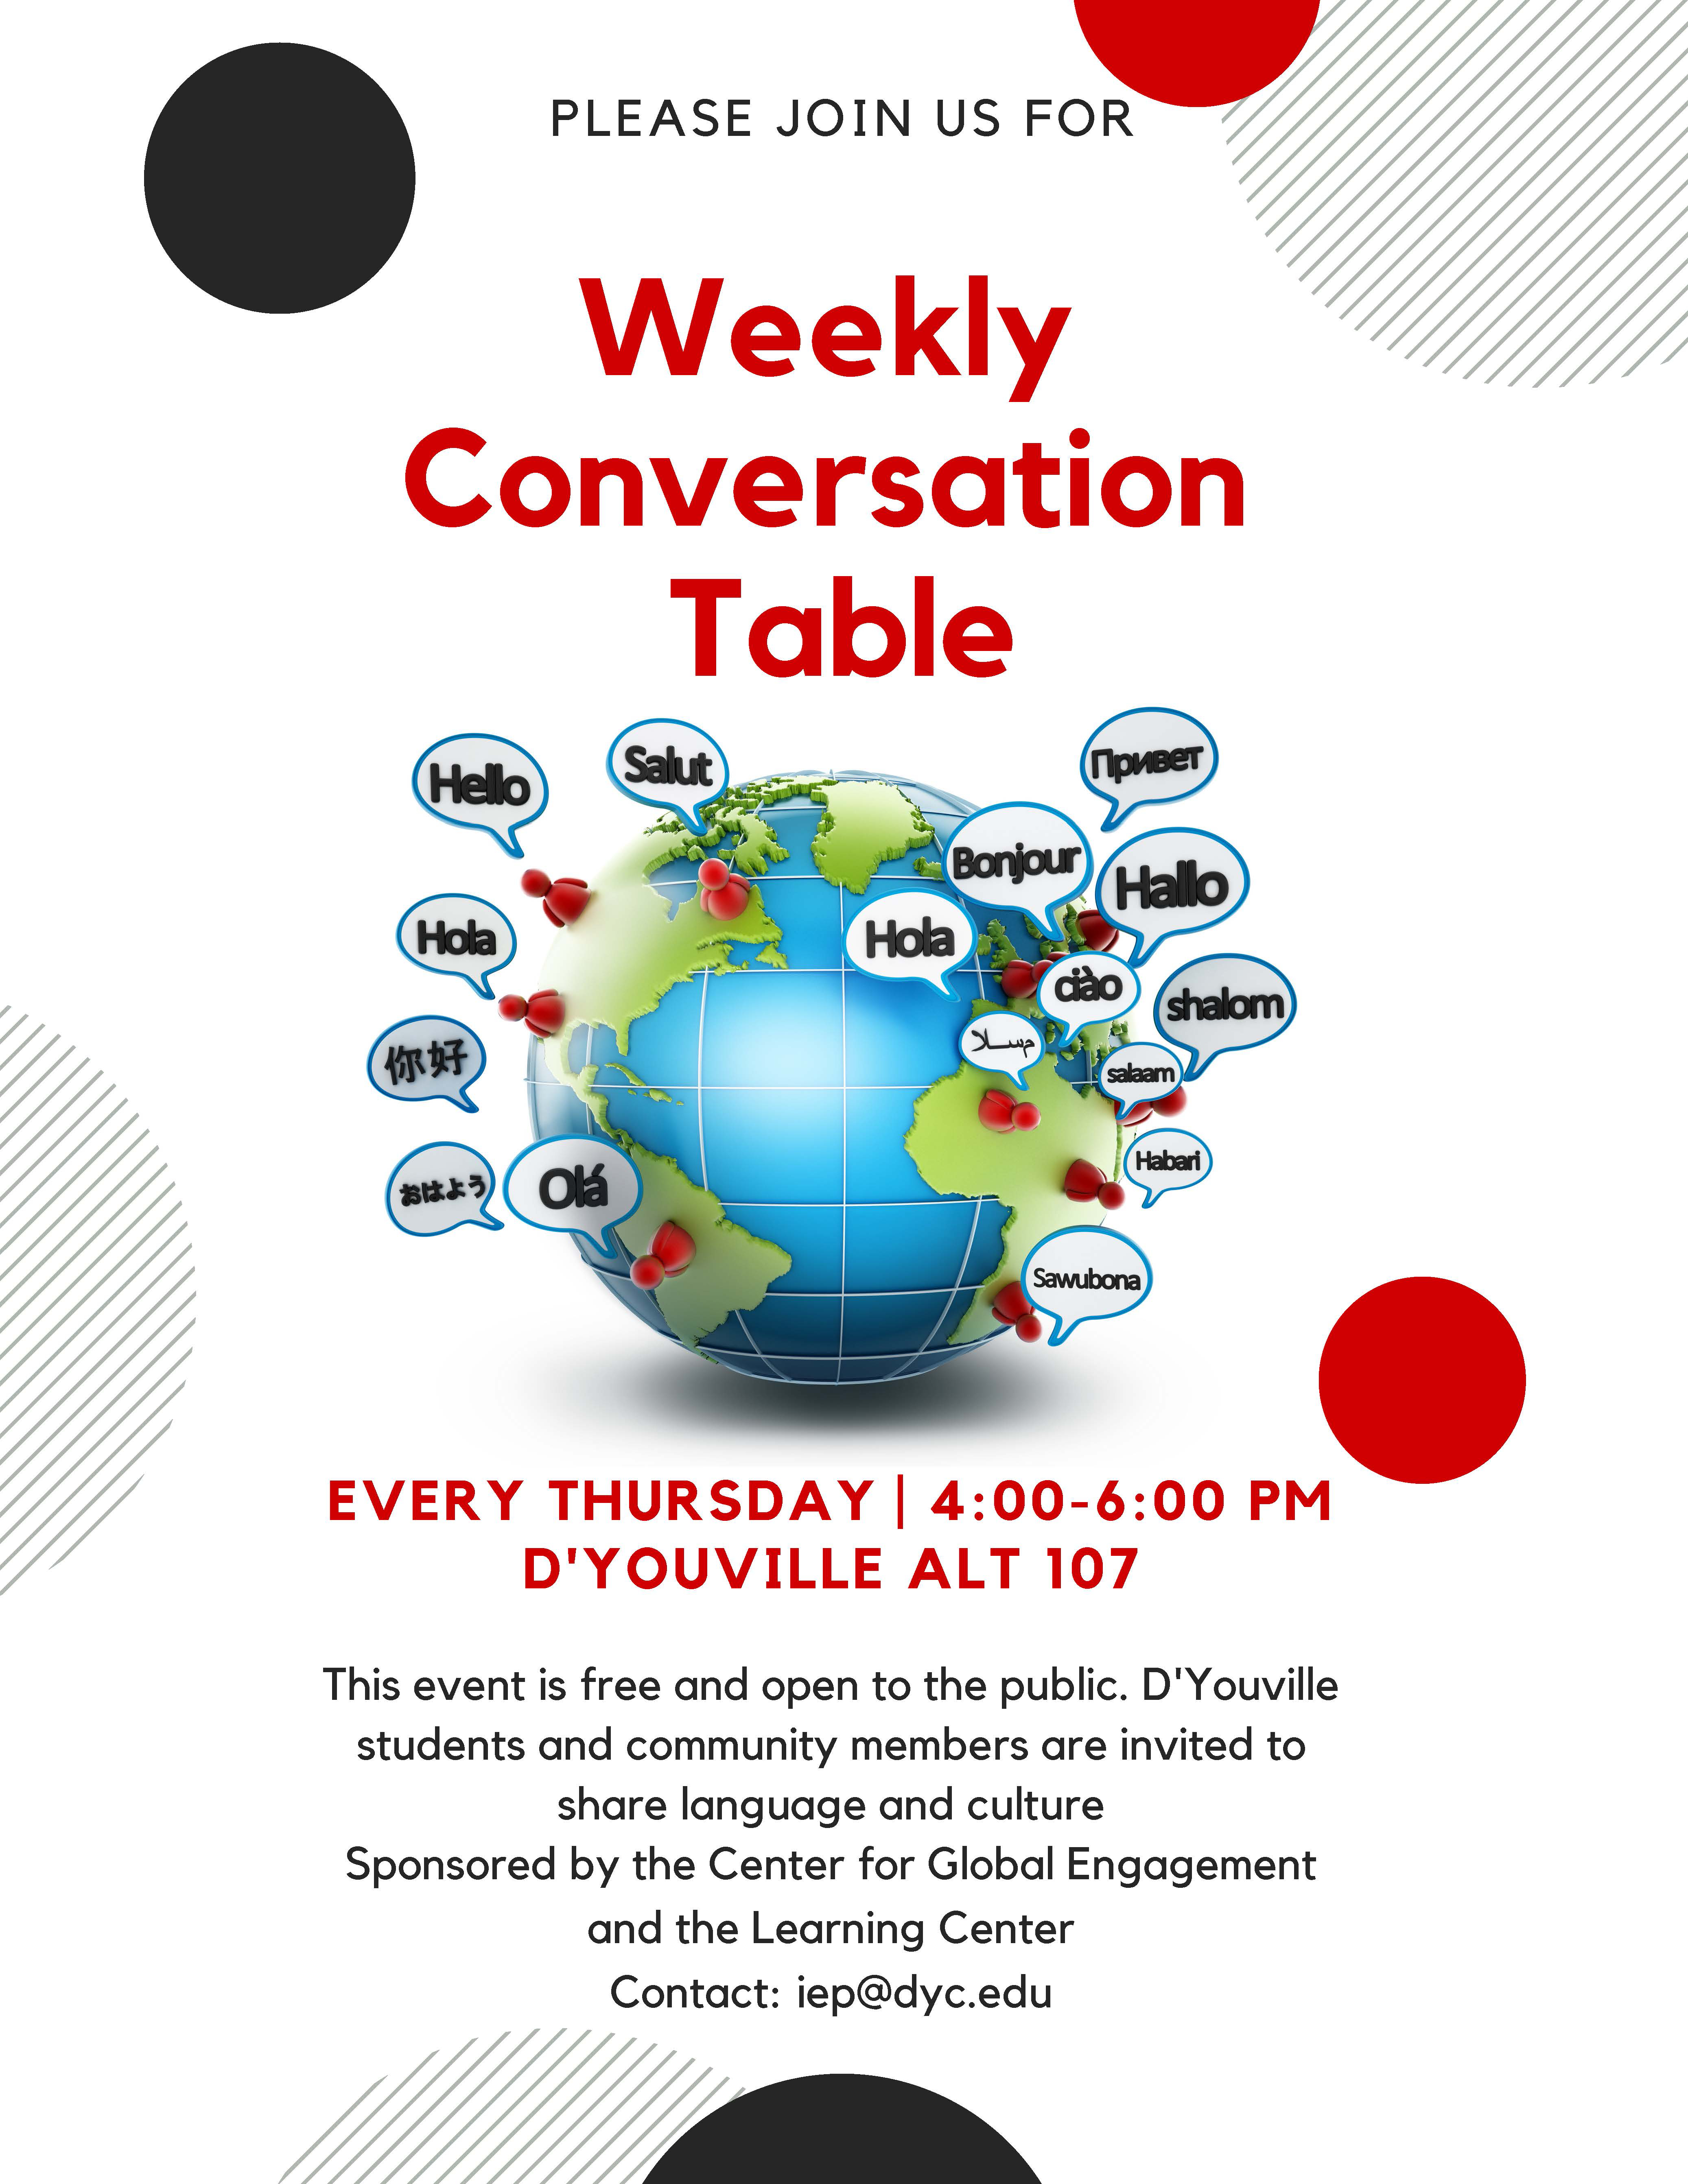 D'youville Events Calendar - Weekly Conversation Table D'youville Calendar 2019